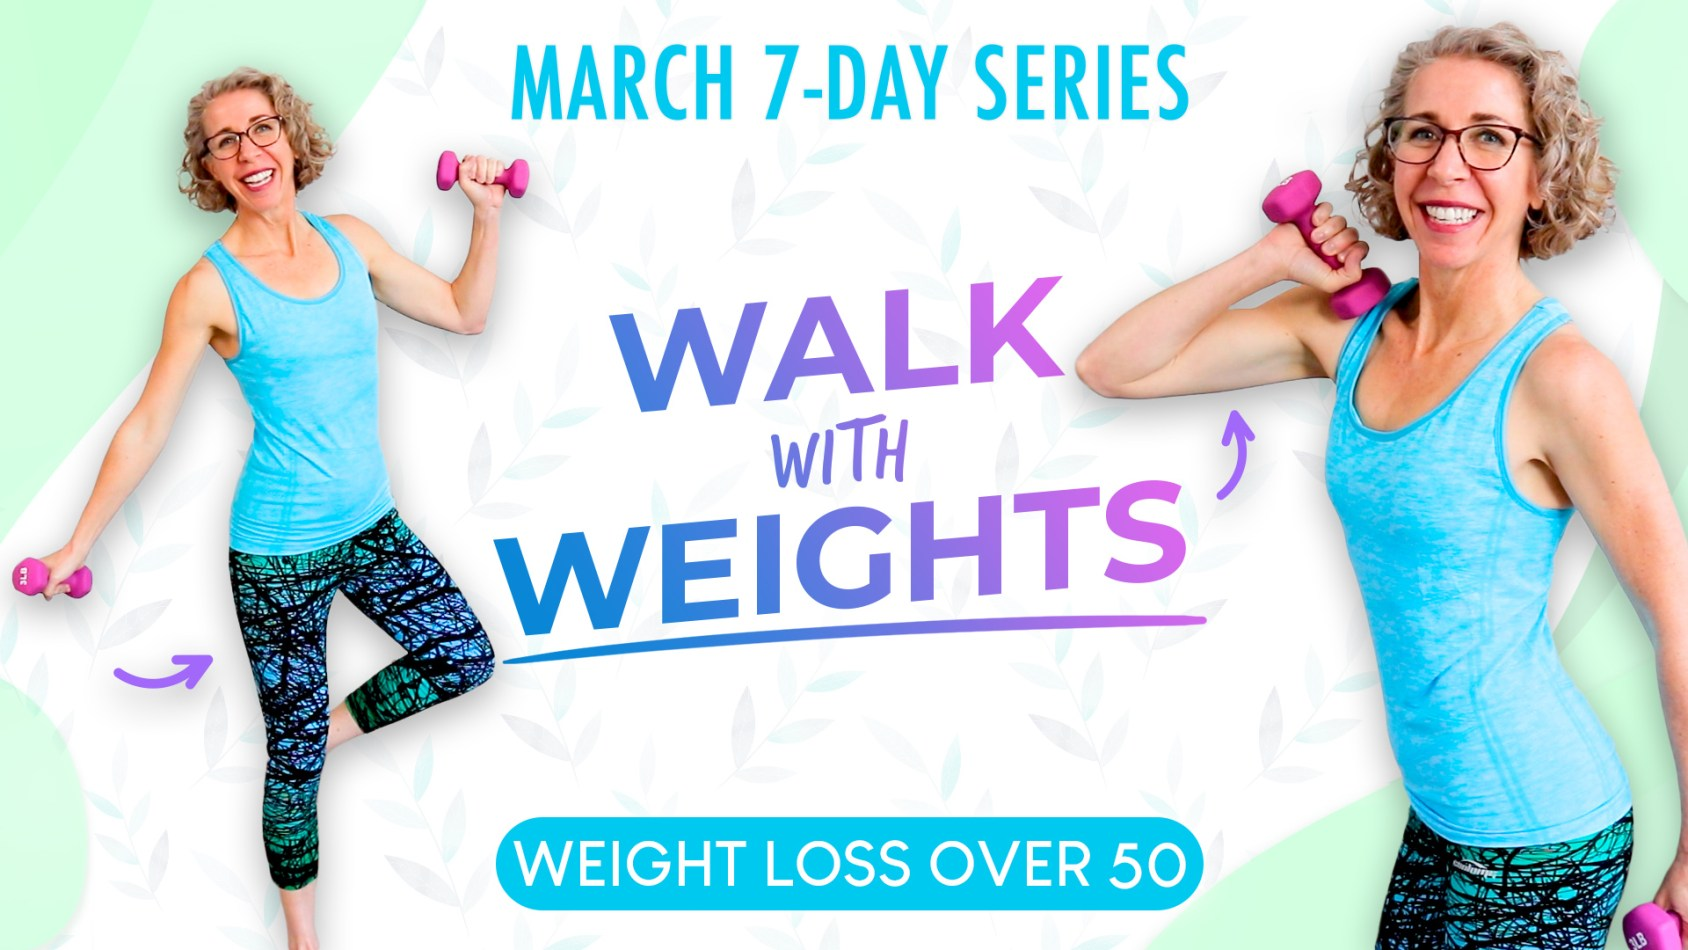 Let's WALK! Light Dumbbell Toning WEIGHT LOSS Workout ???? Pahla B Fitness